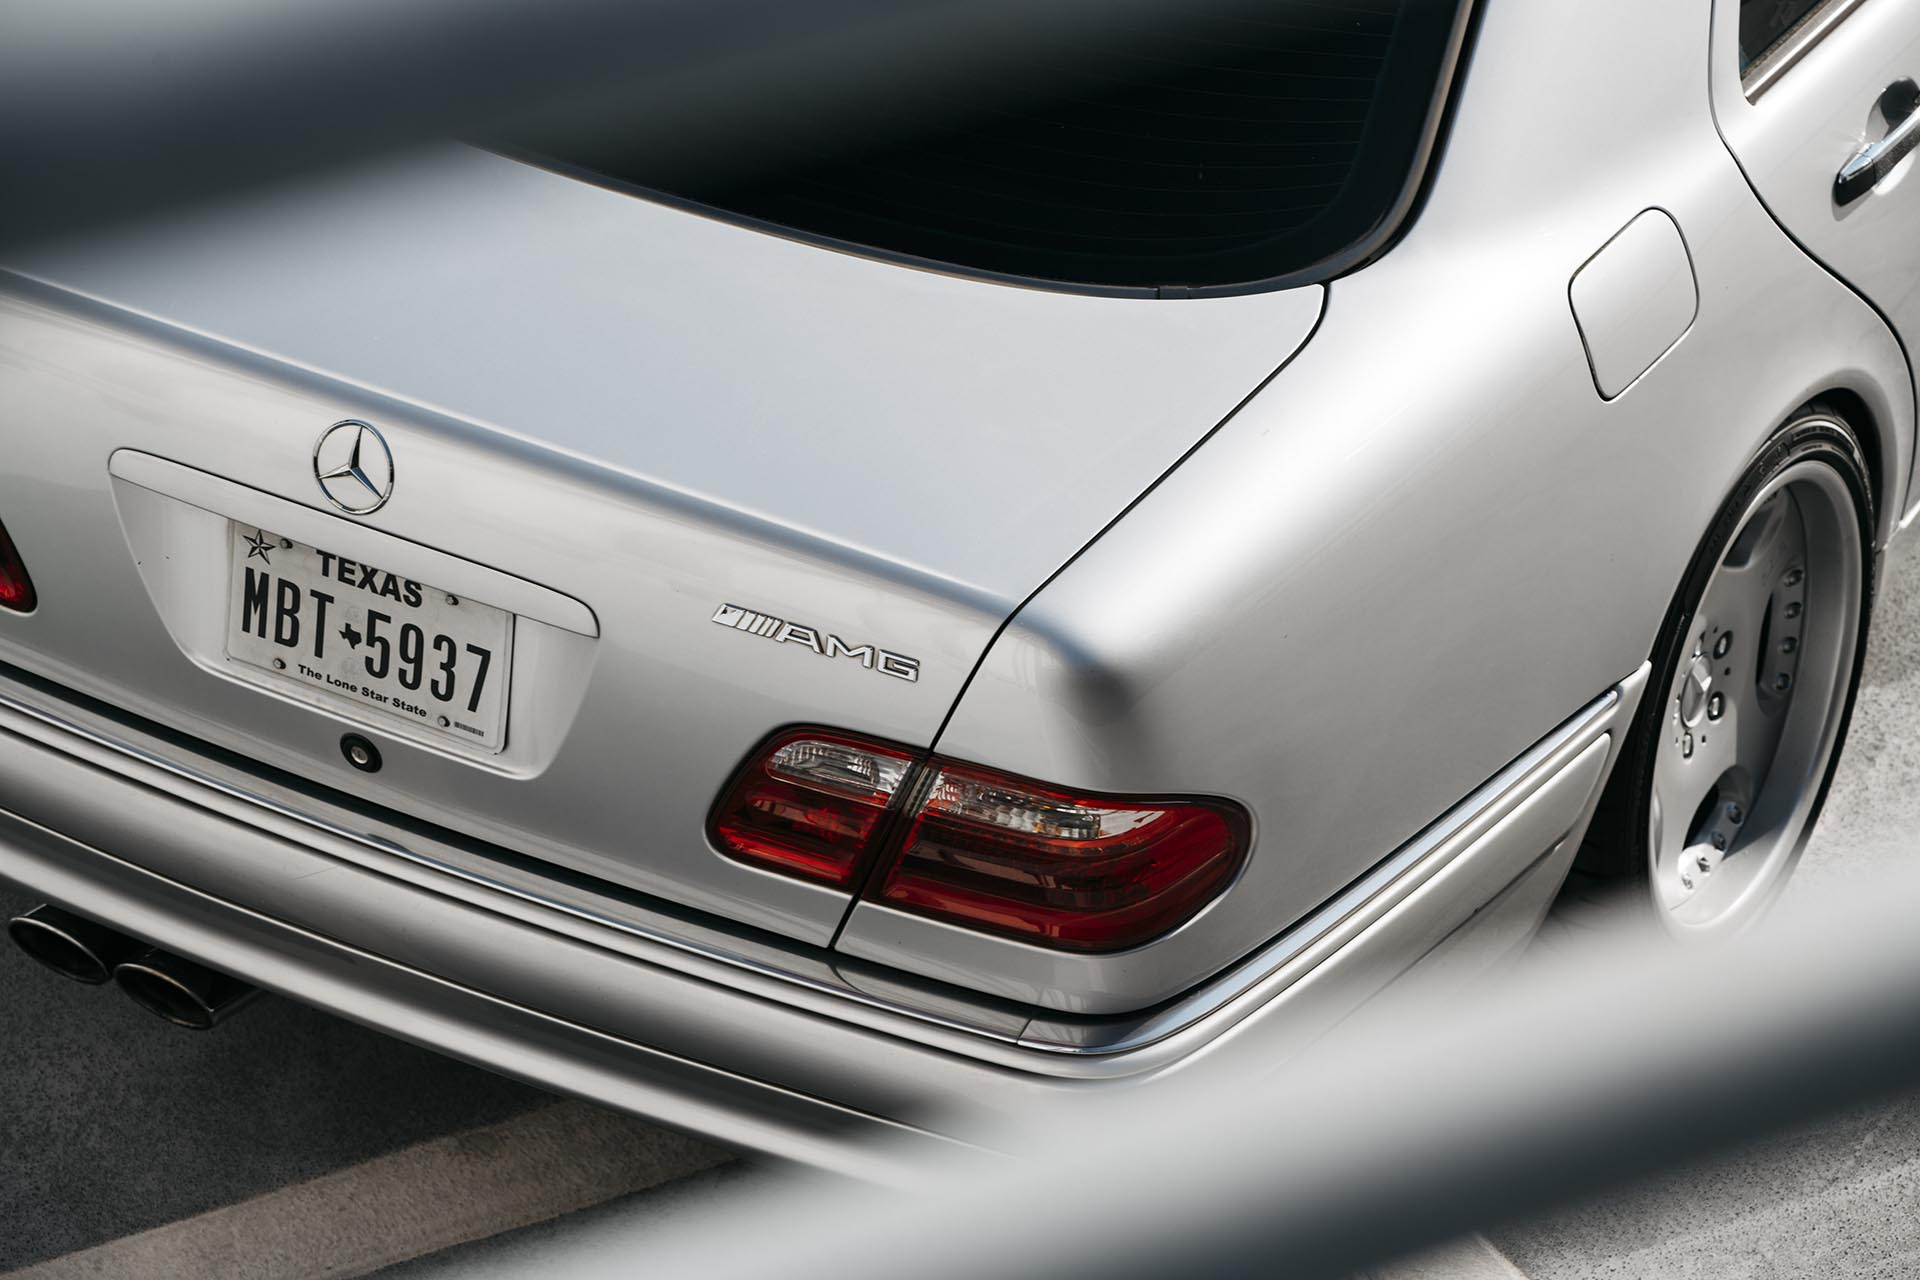 07_Mercedes-Benz E55 AMG manual swapped rear AMG badge